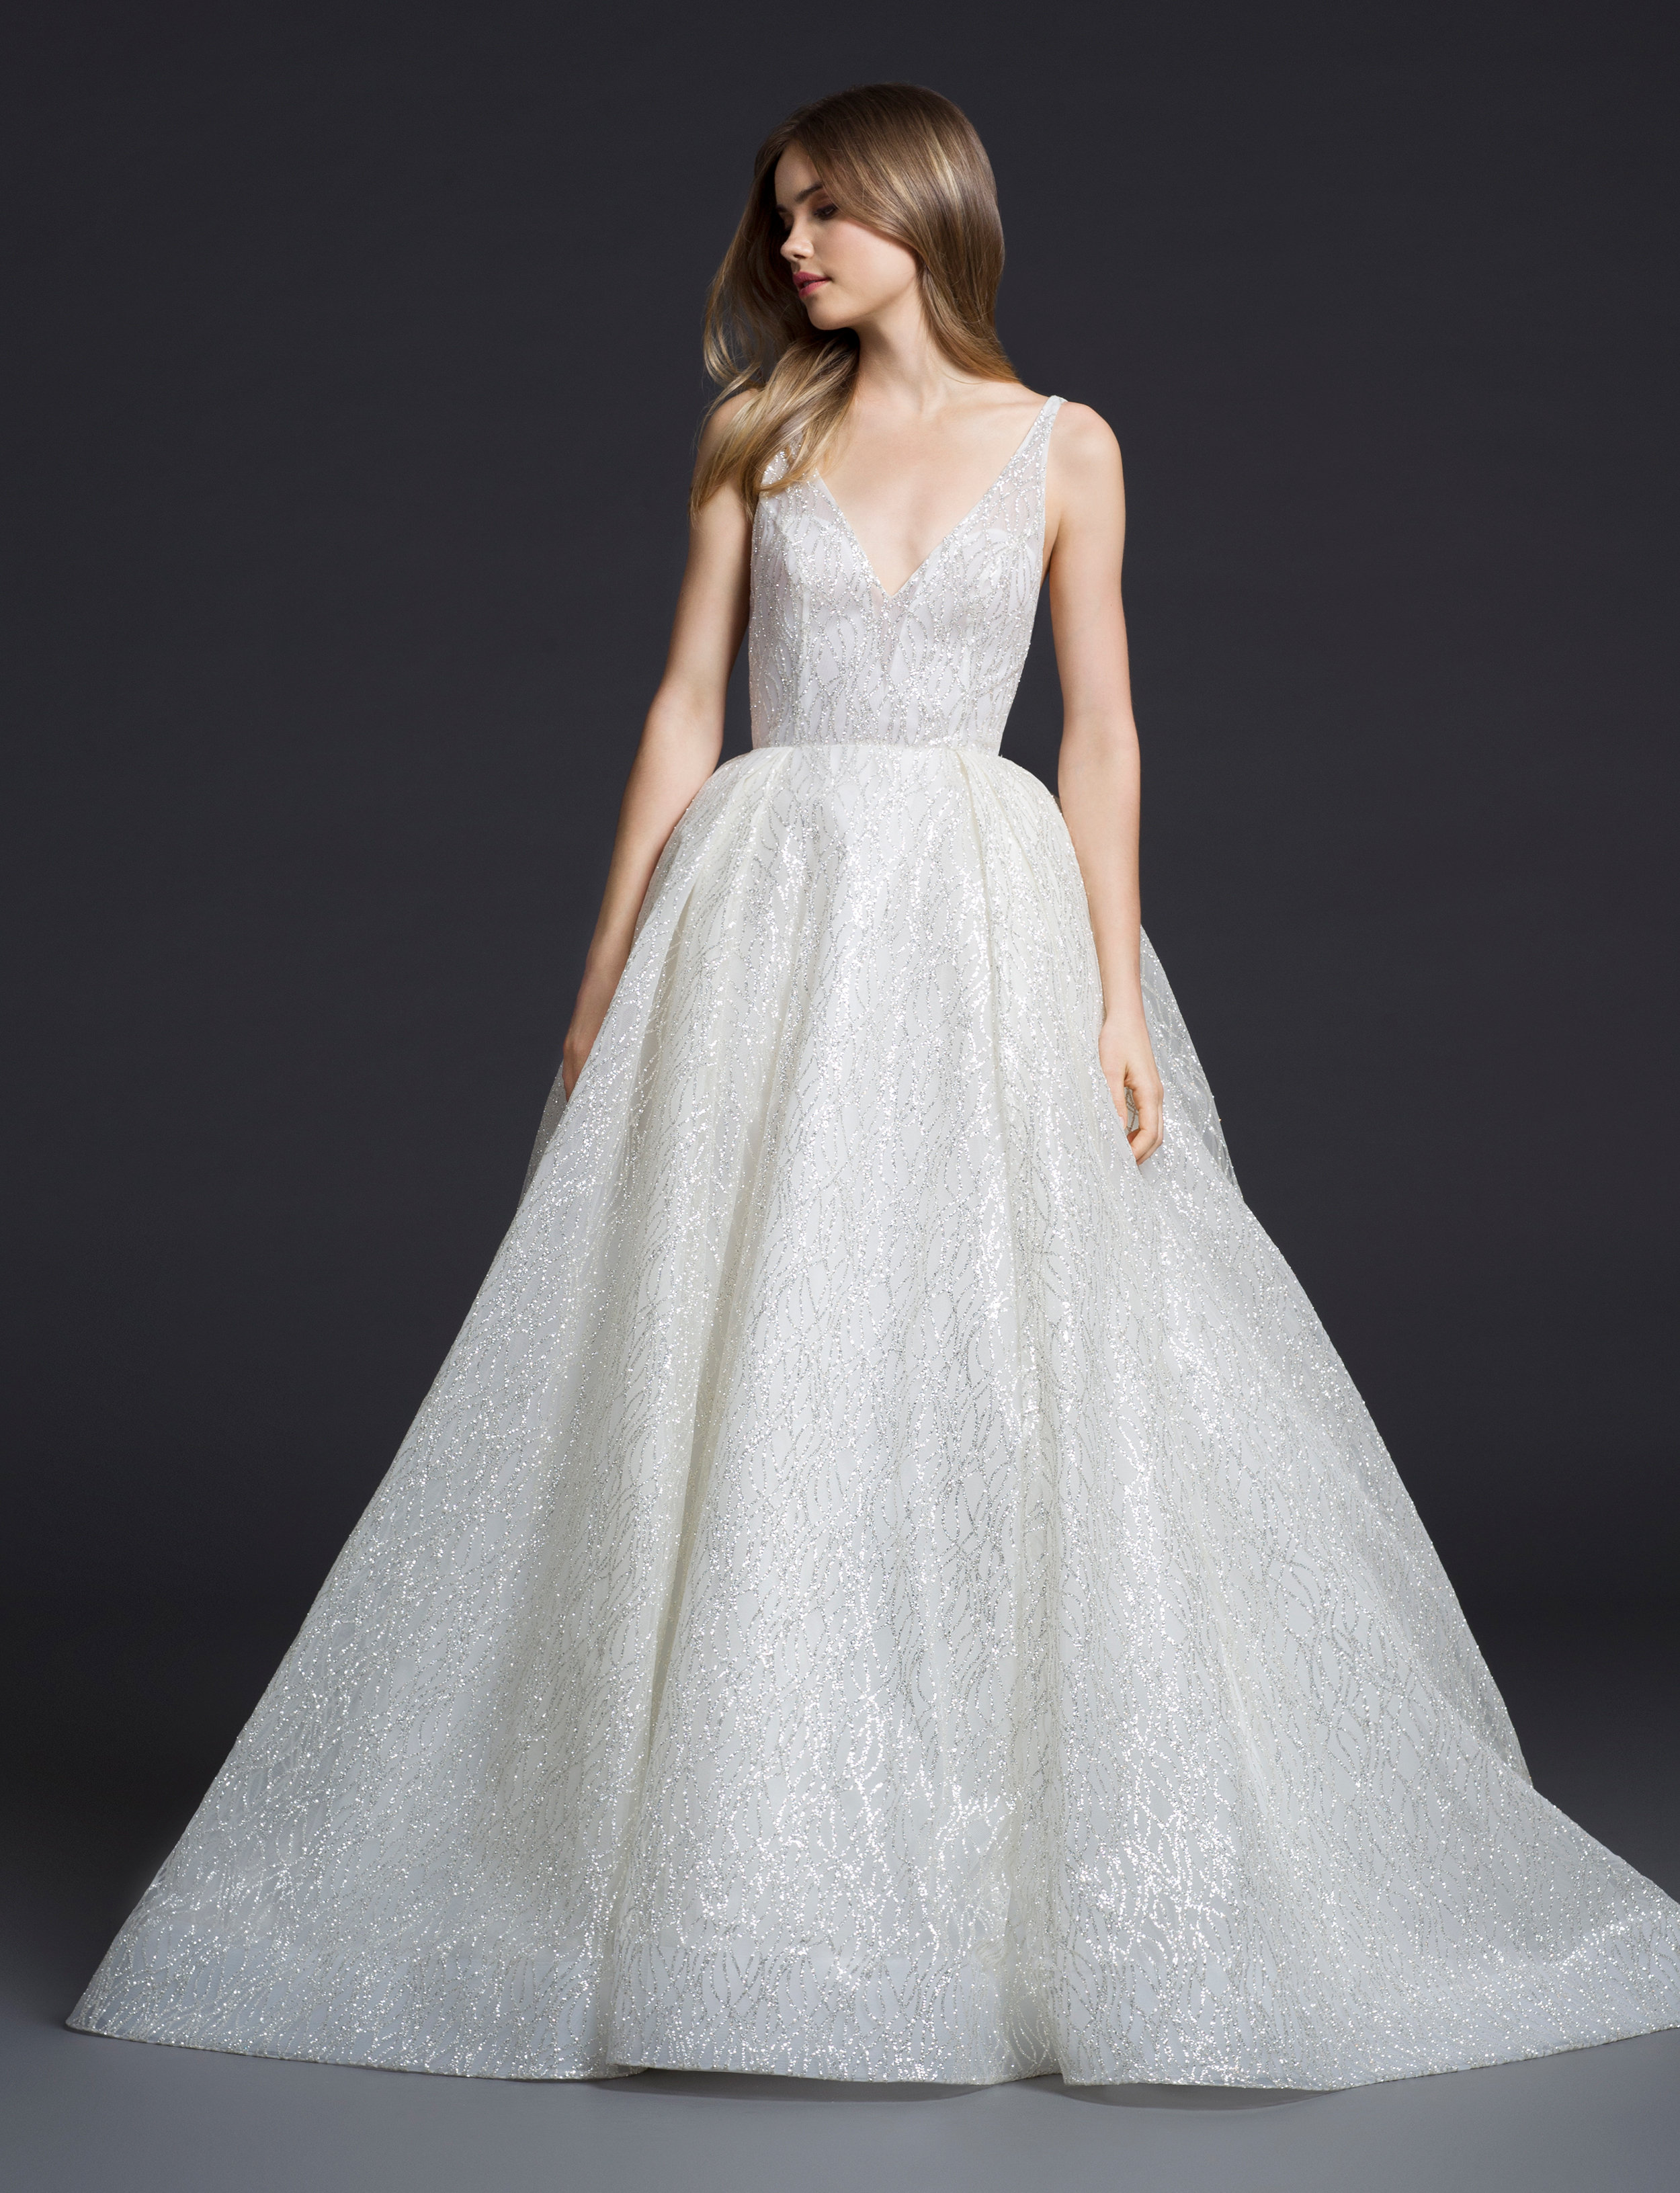 Bridal gowns and wedding dresses by jlm couture style 3662 style 3662 look book front junglespirit Images